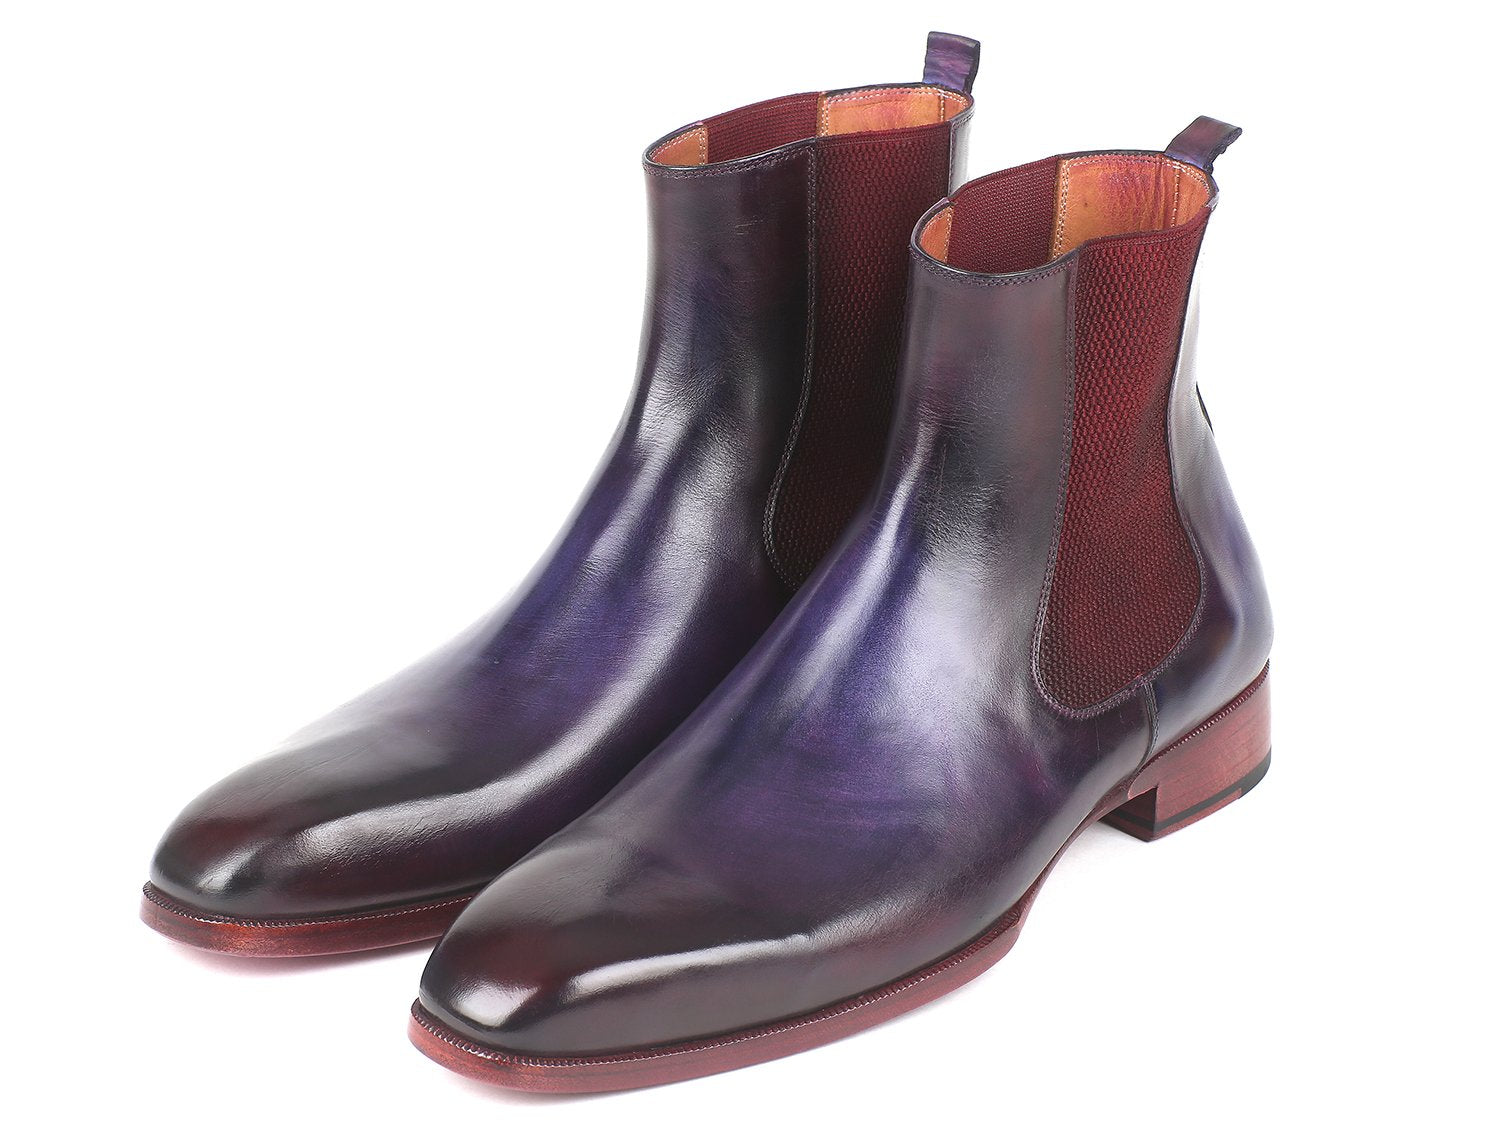 Paul Parkman Navy & Purple Chelsea Boots (ID#BT552PUR)